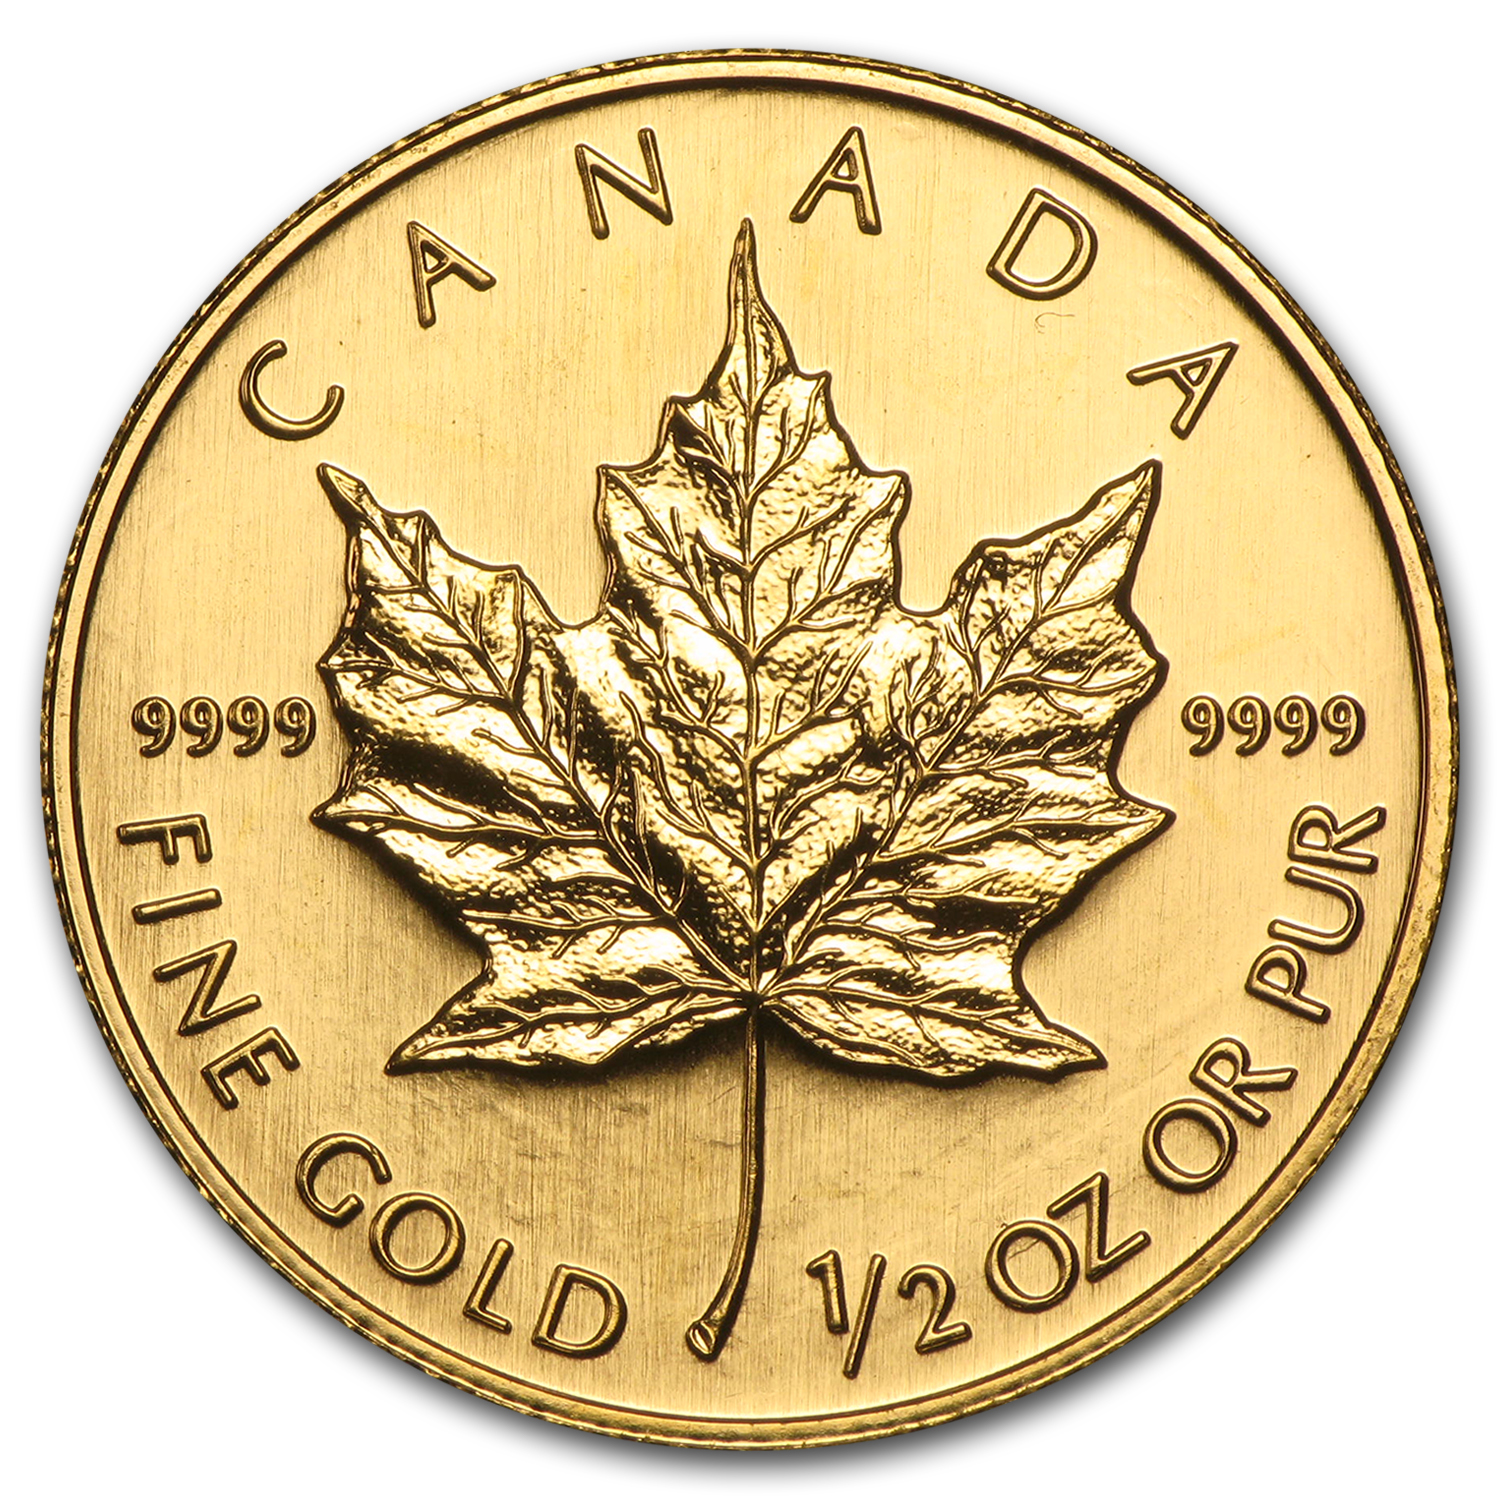 2006 Canada 1/2 oz Gold Maple Leaf BU